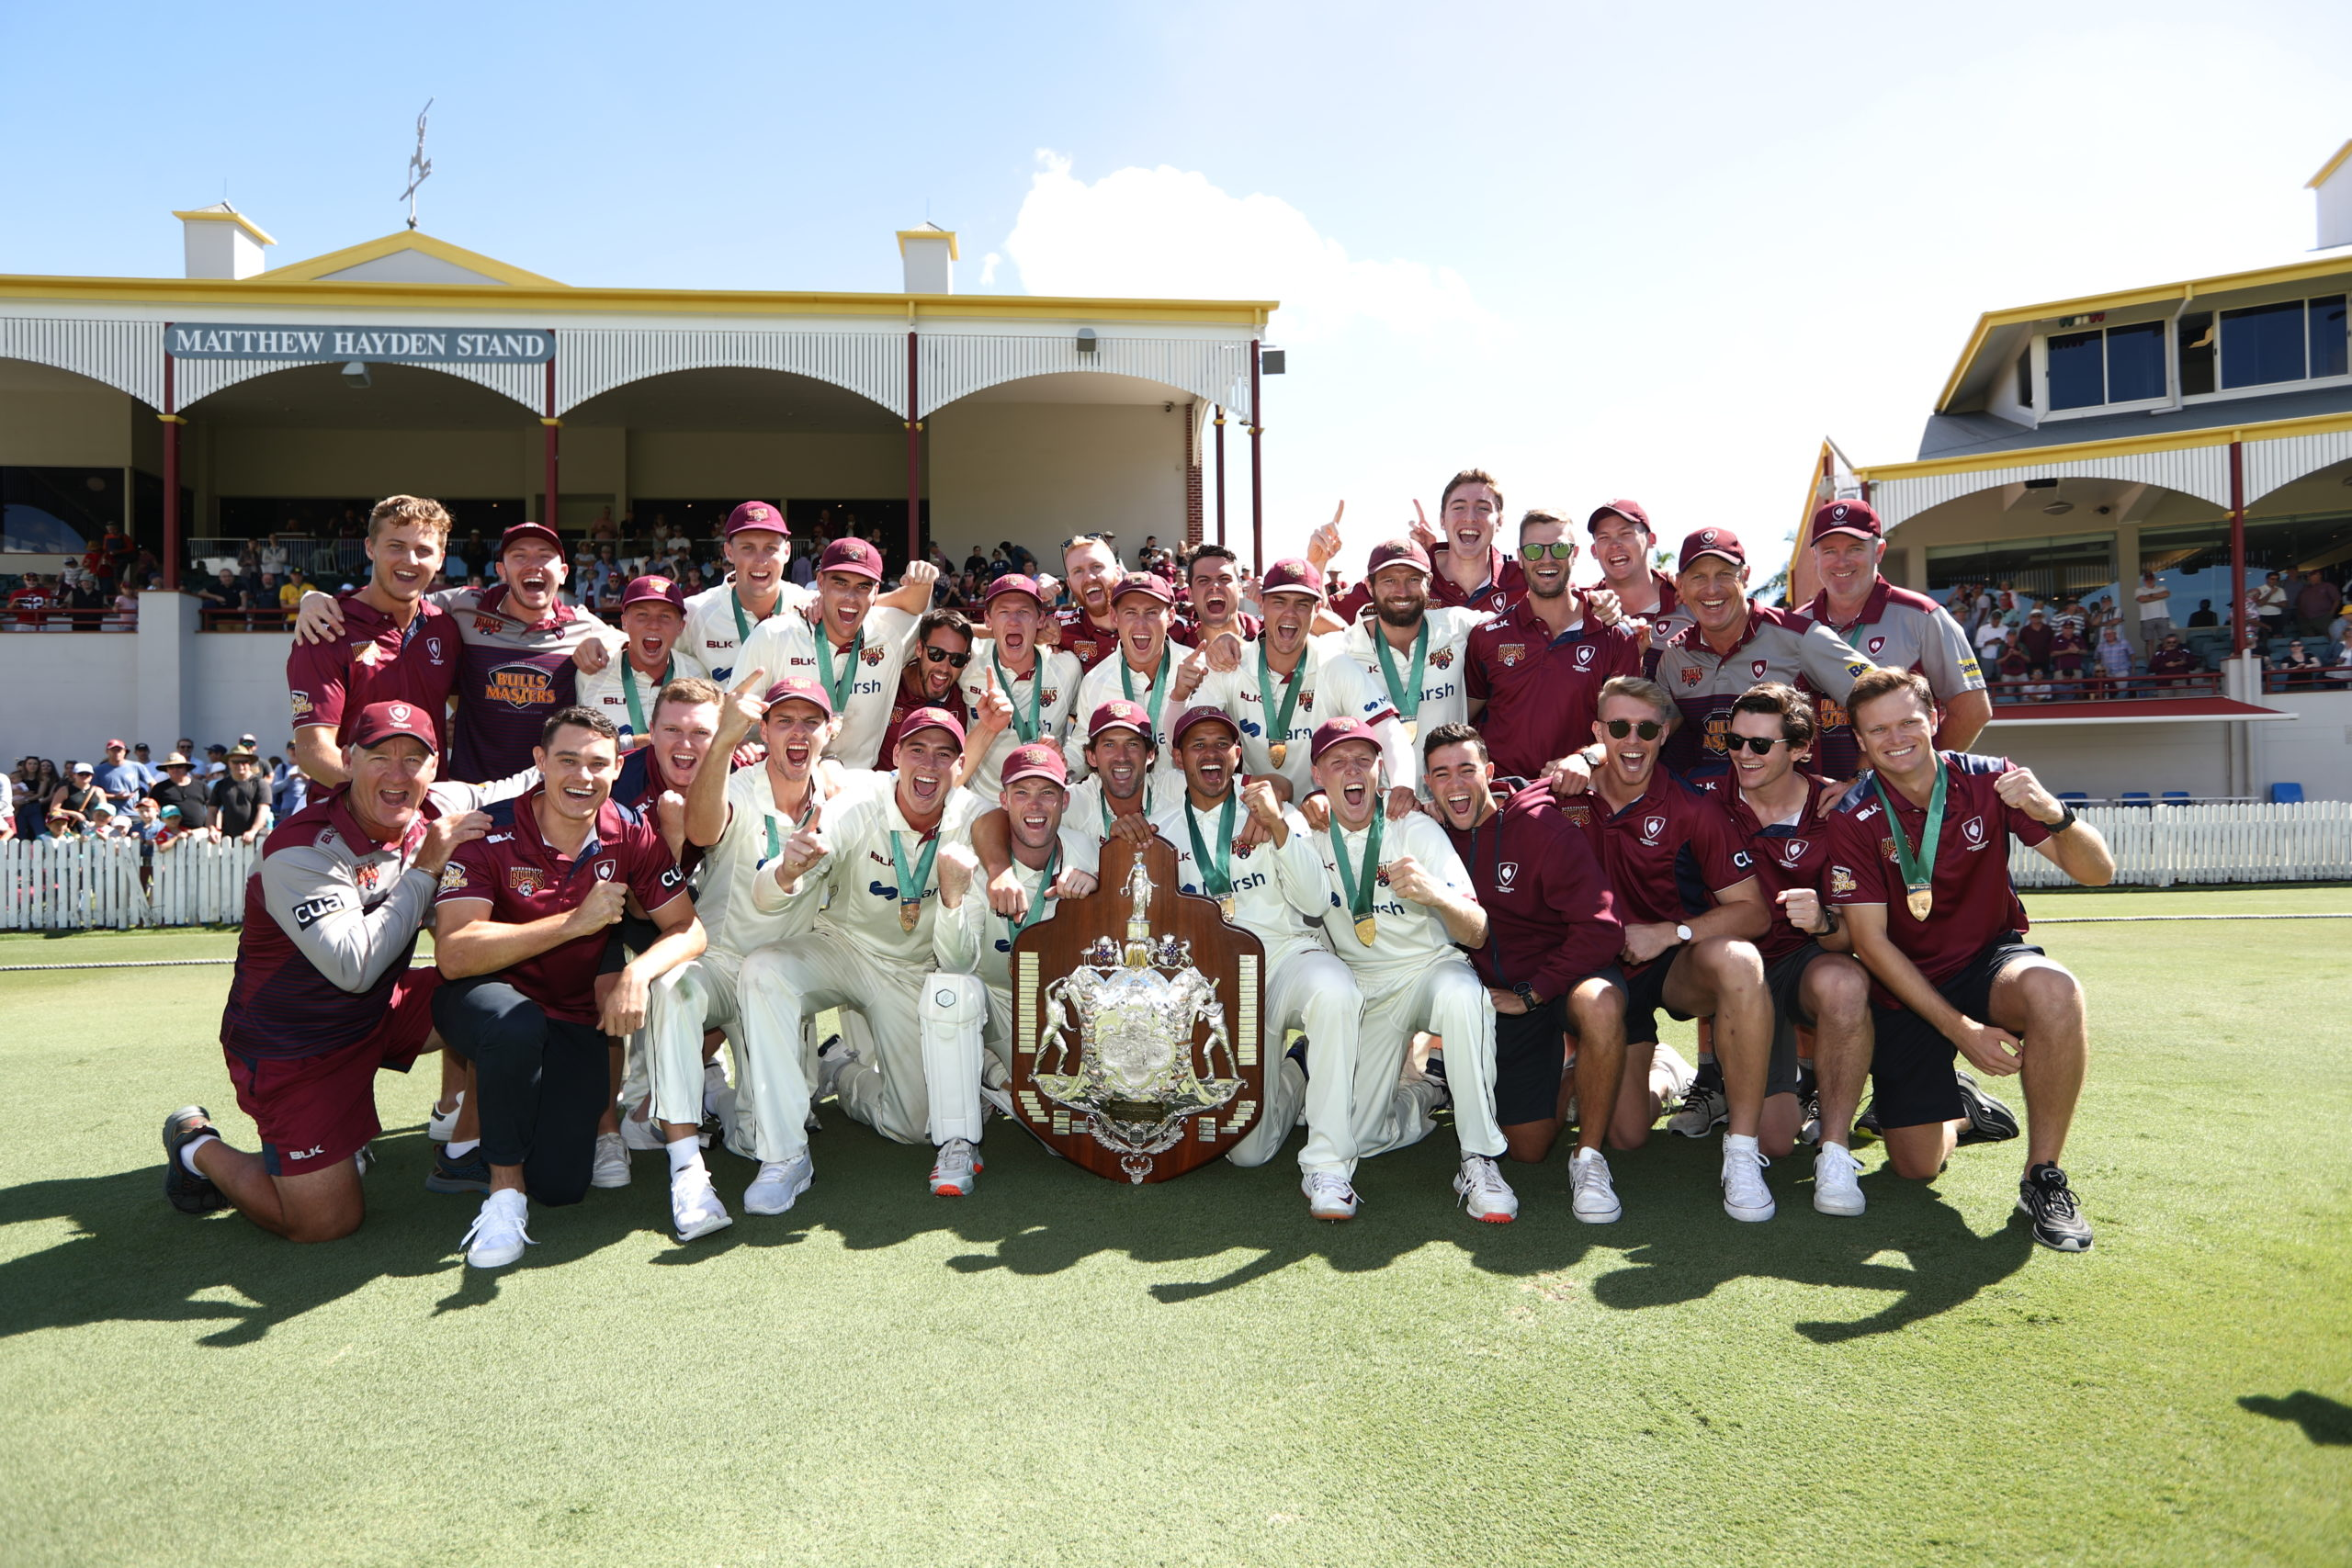 Cricket Australia: Full domestic schedules complete biggest ever summer of cricket